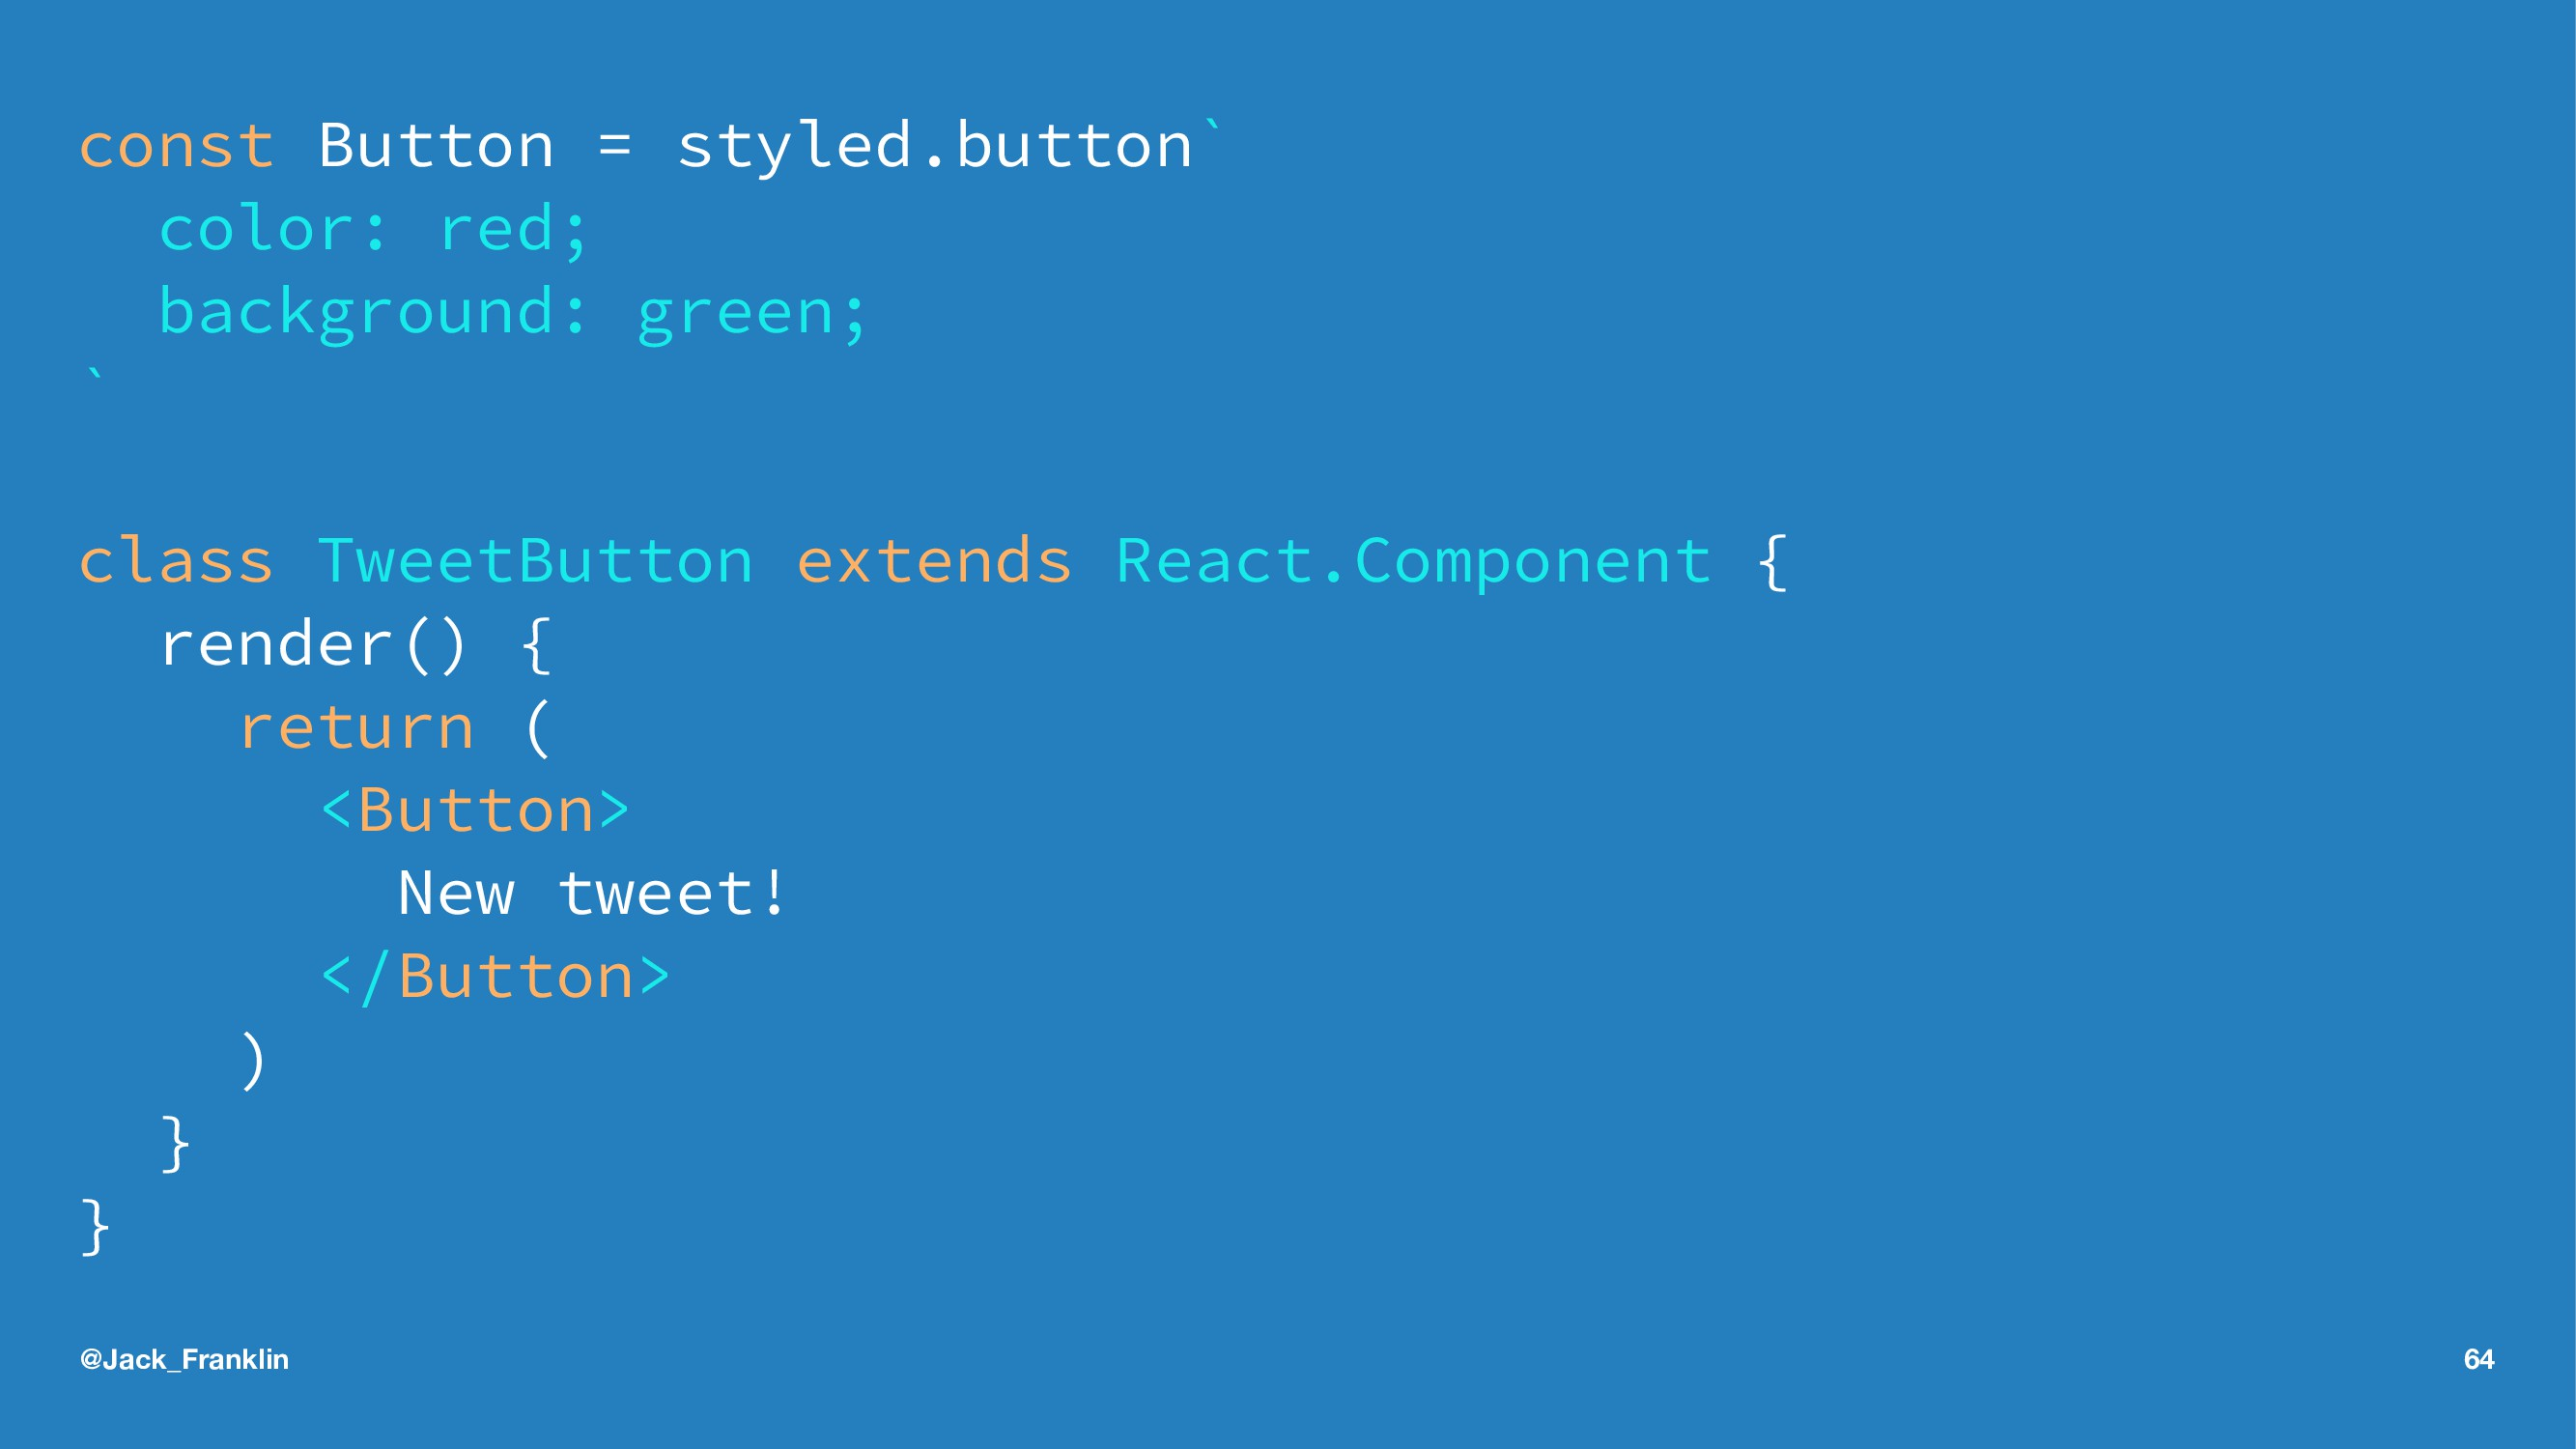 const Button = styled.button` color: red; backg...